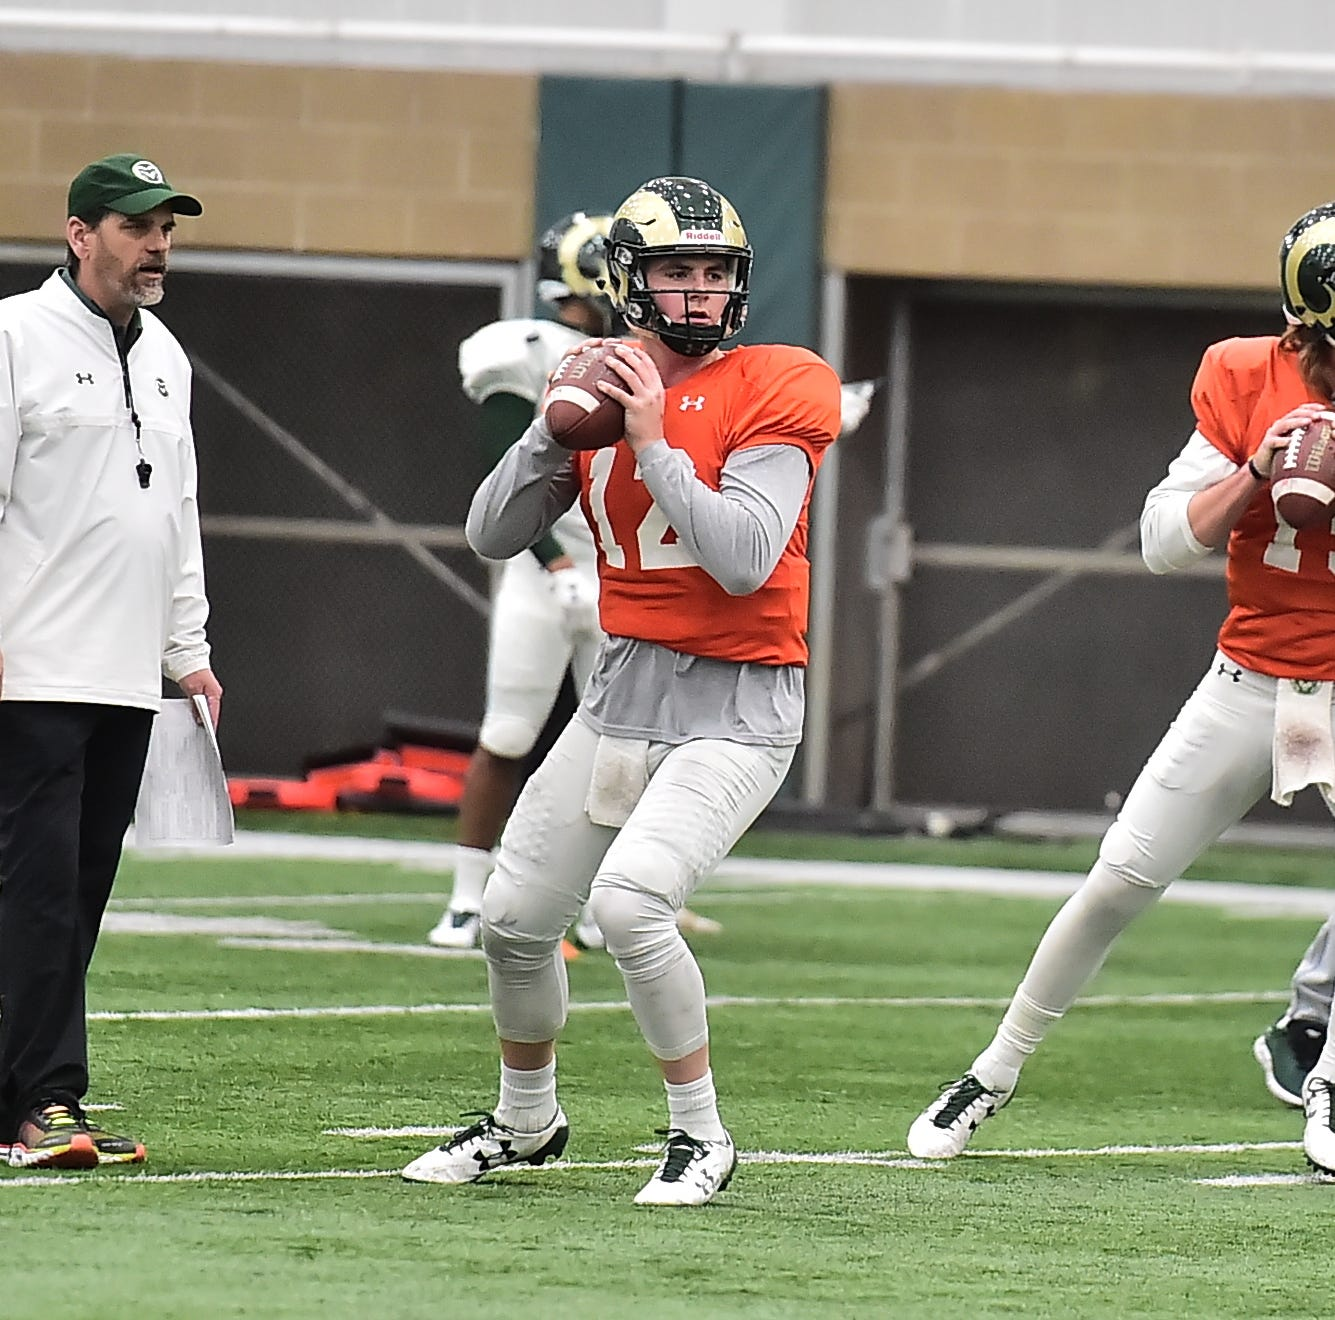 Blizzard forces CSU football to move spring game indoors and close it to the public